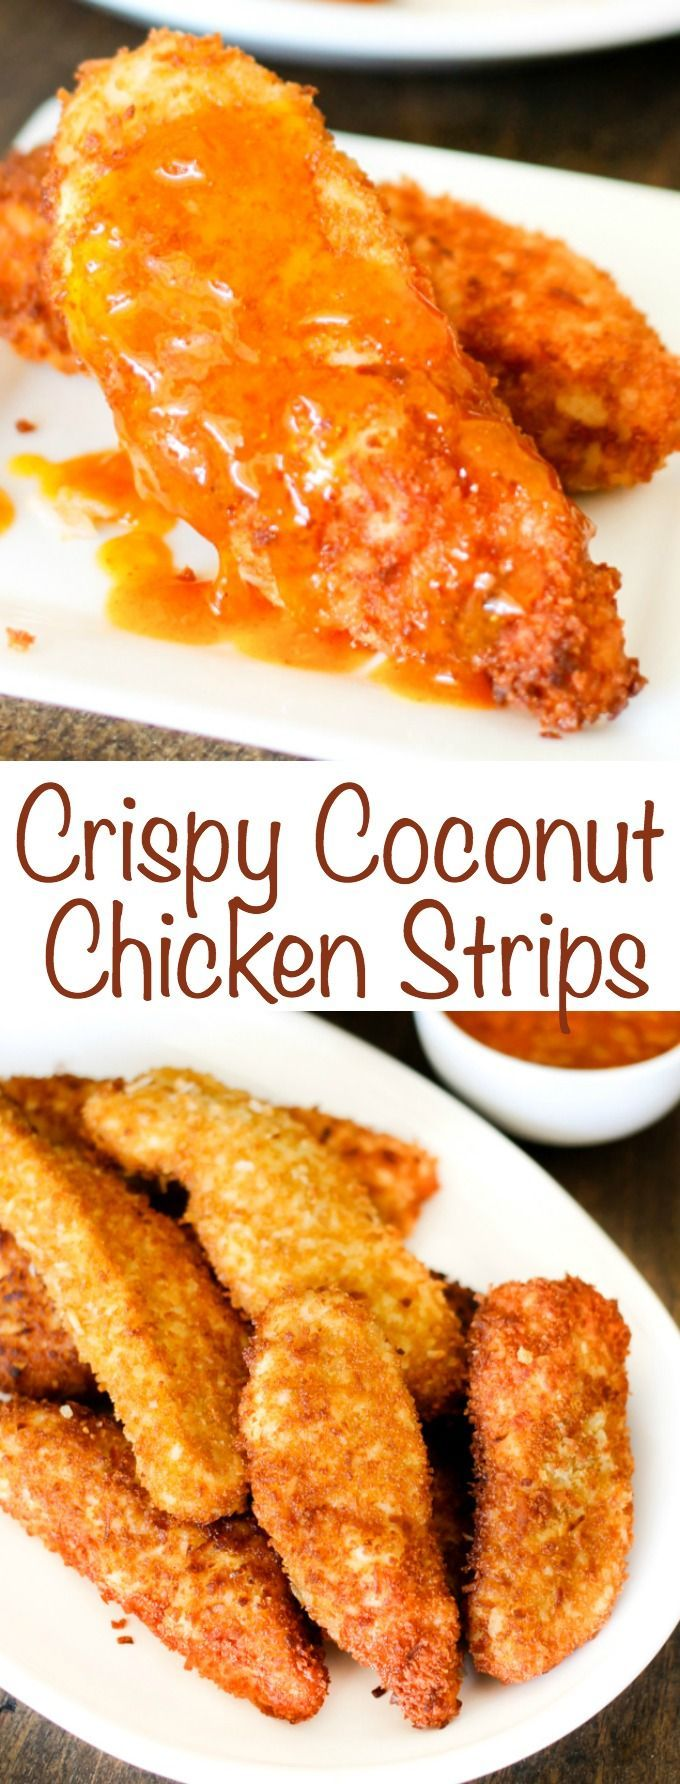 Crispy Coconut Chicken Strips with Peach Curry Sauce are a great dinner solution that comes together in just a few minutes.